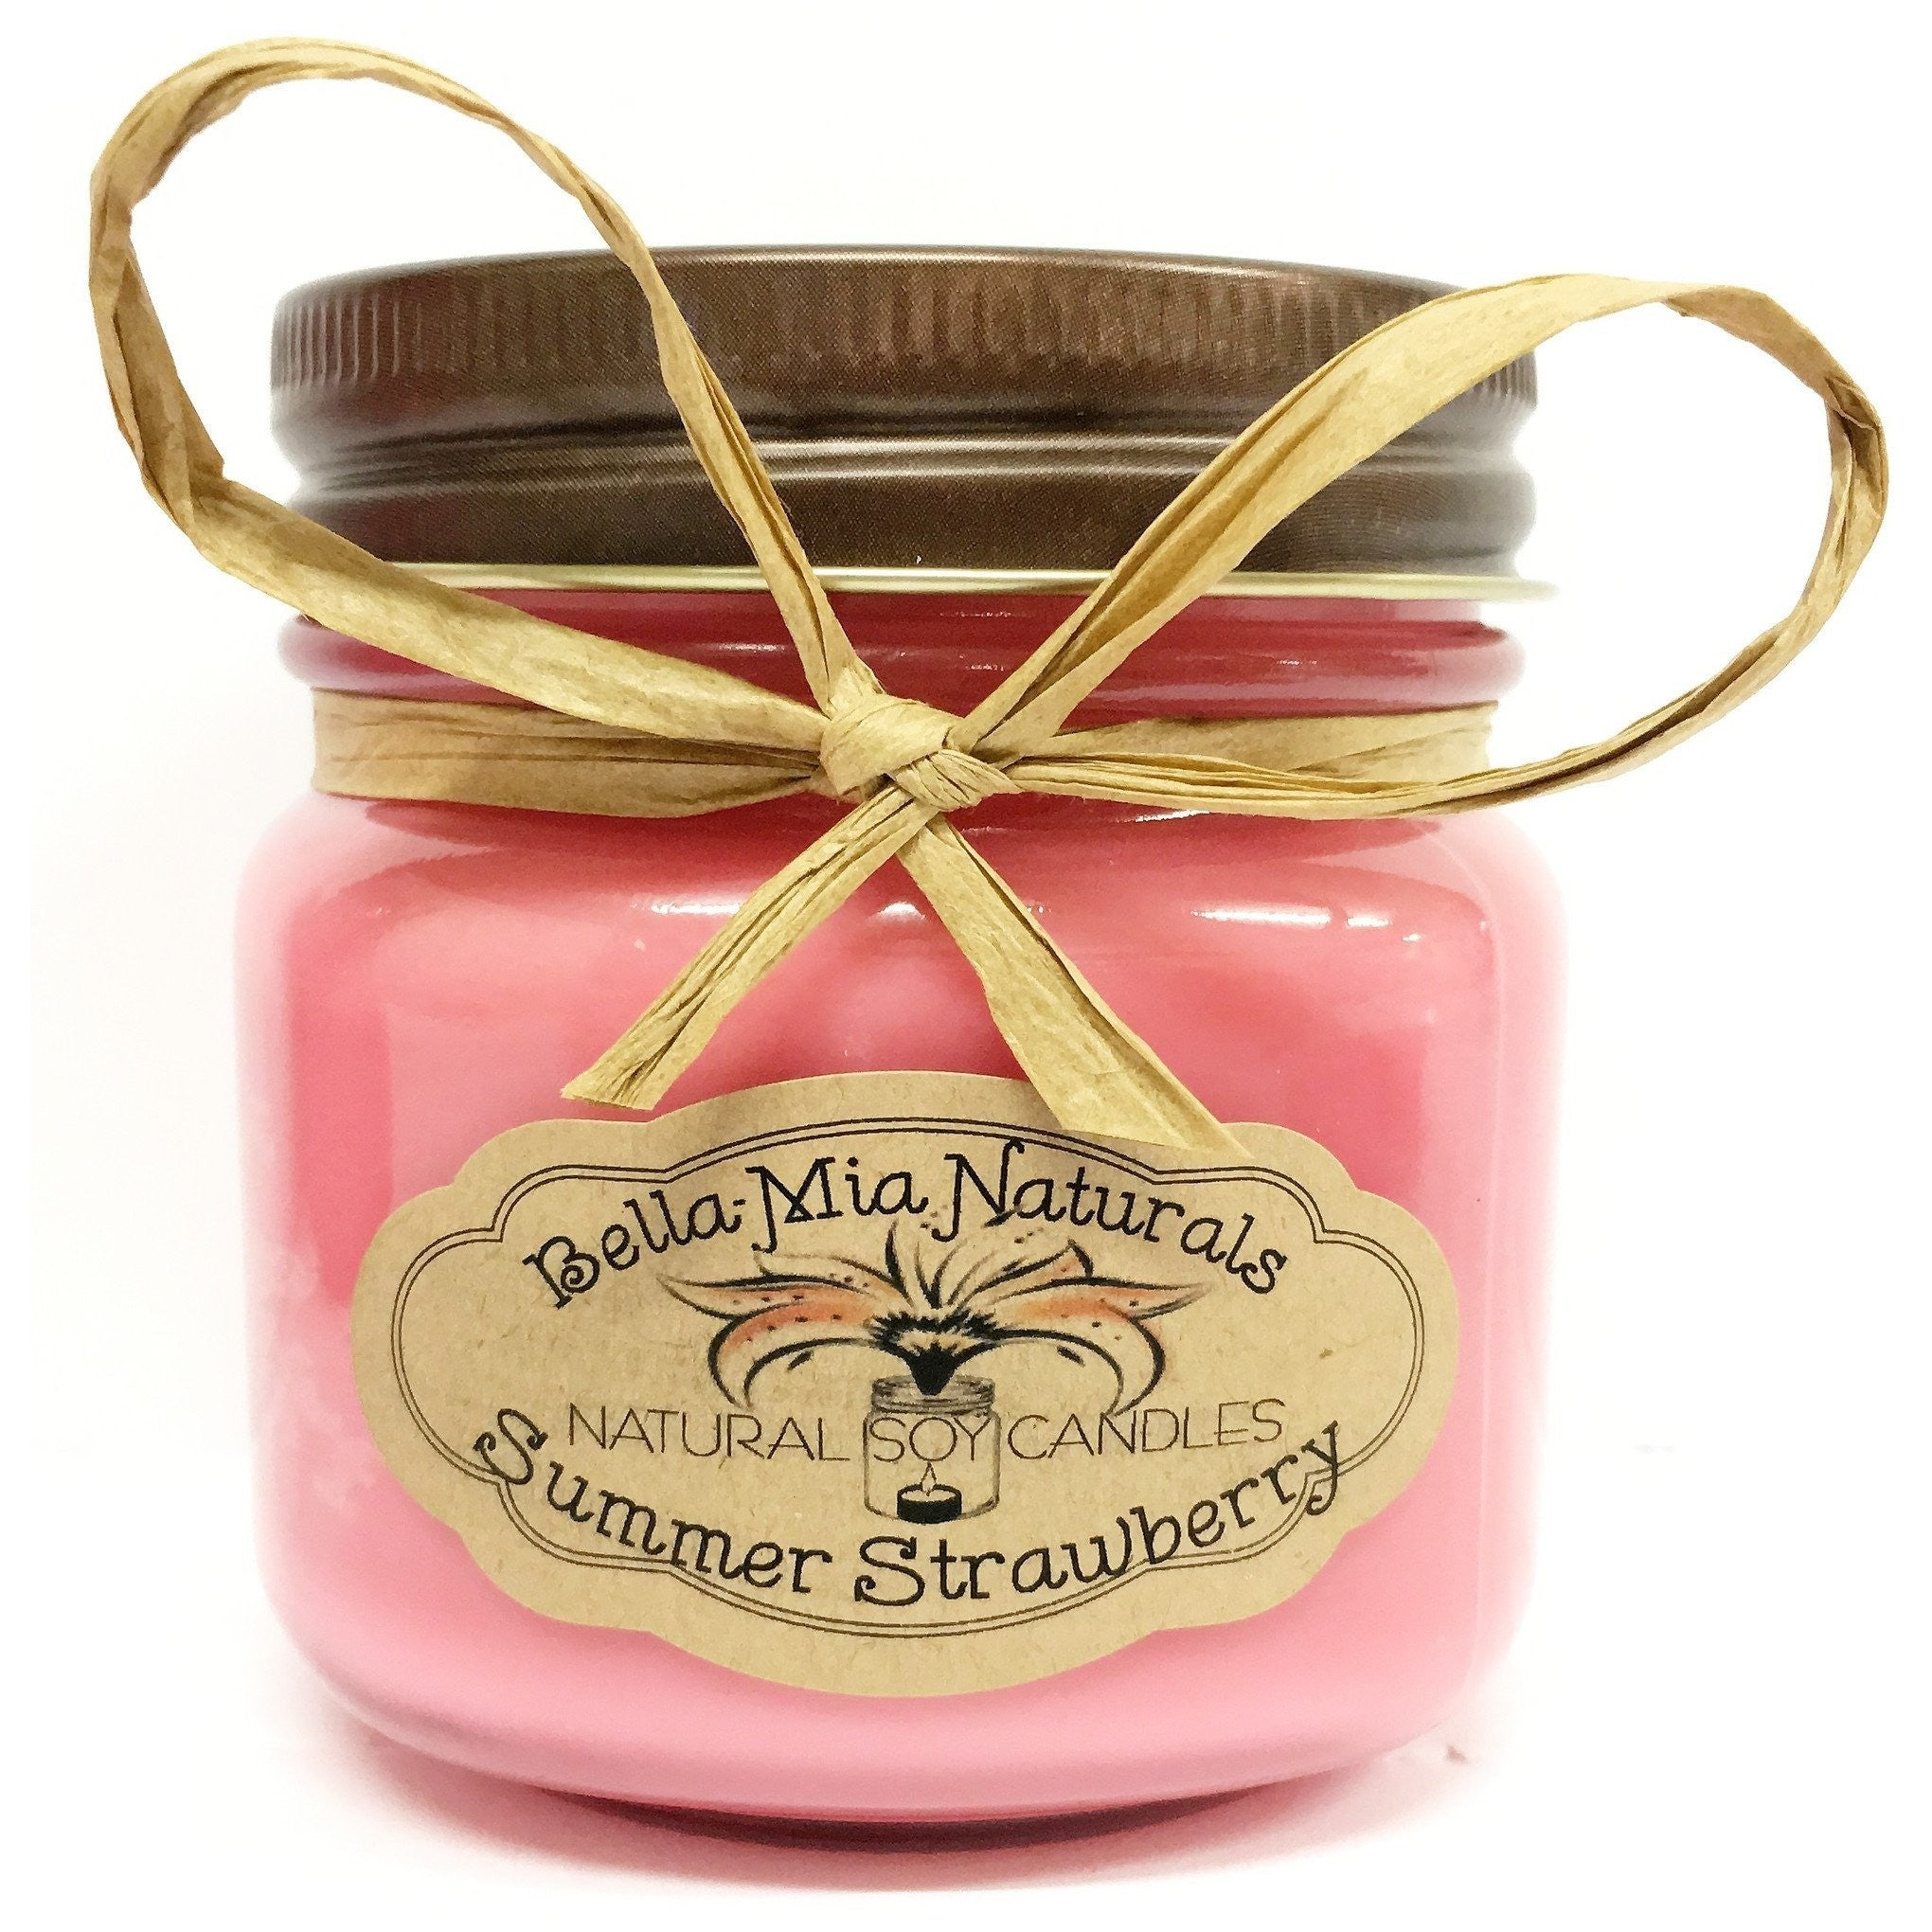 Summer Strawberry Natural Hand Poured Soy Candles - Half-Pint - Bella-Mia Naturals All Natural Soy Candles & Lip Balms - 3